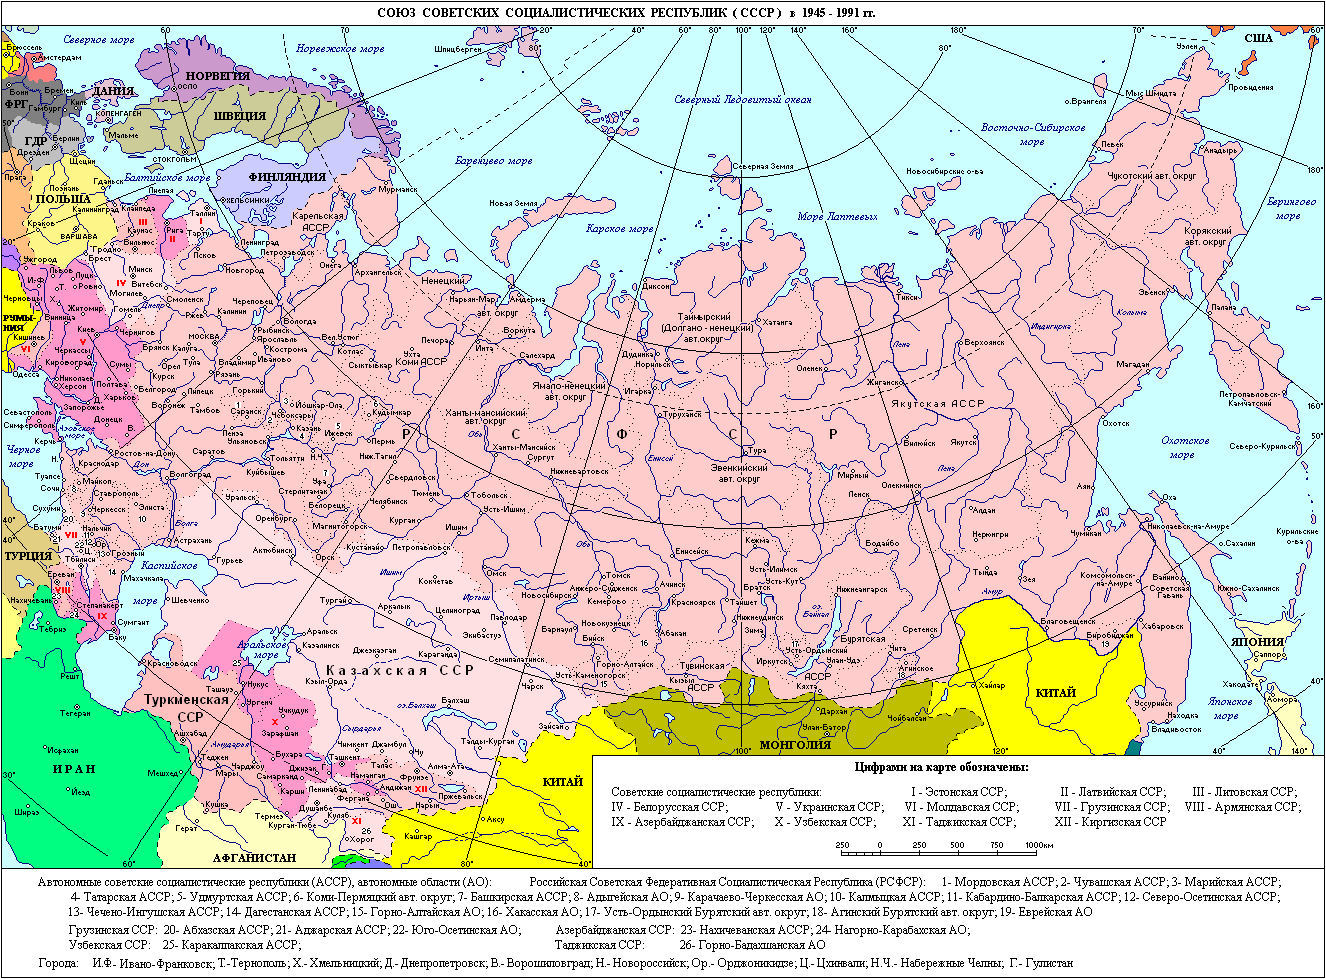 Map of the Russian SFSR, 1945-1991